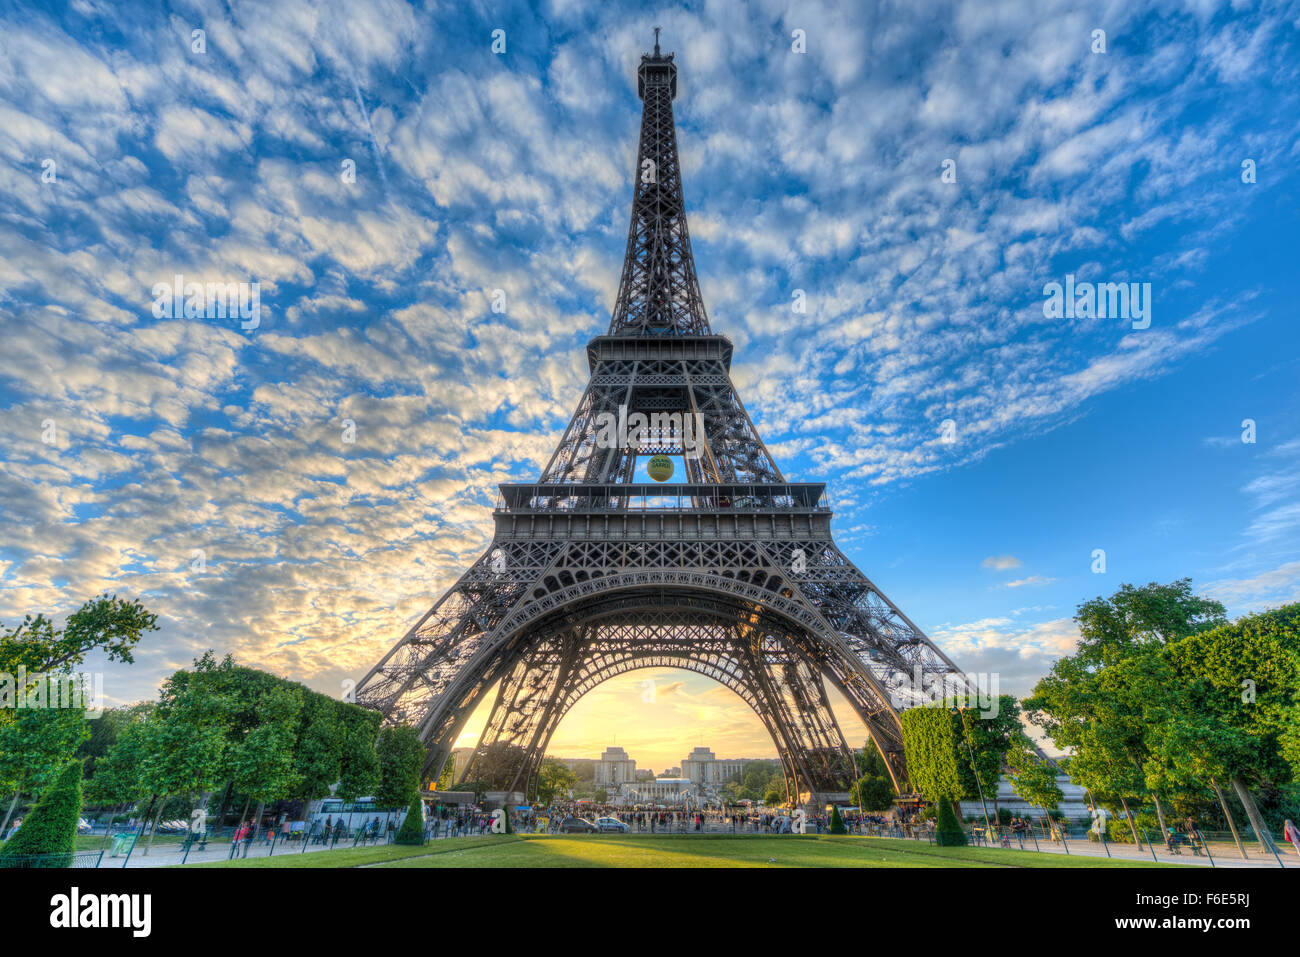 Evening mood, Eiffel Tower, Champ de Mars, Paris, Ile-de-France, France - Stock Image